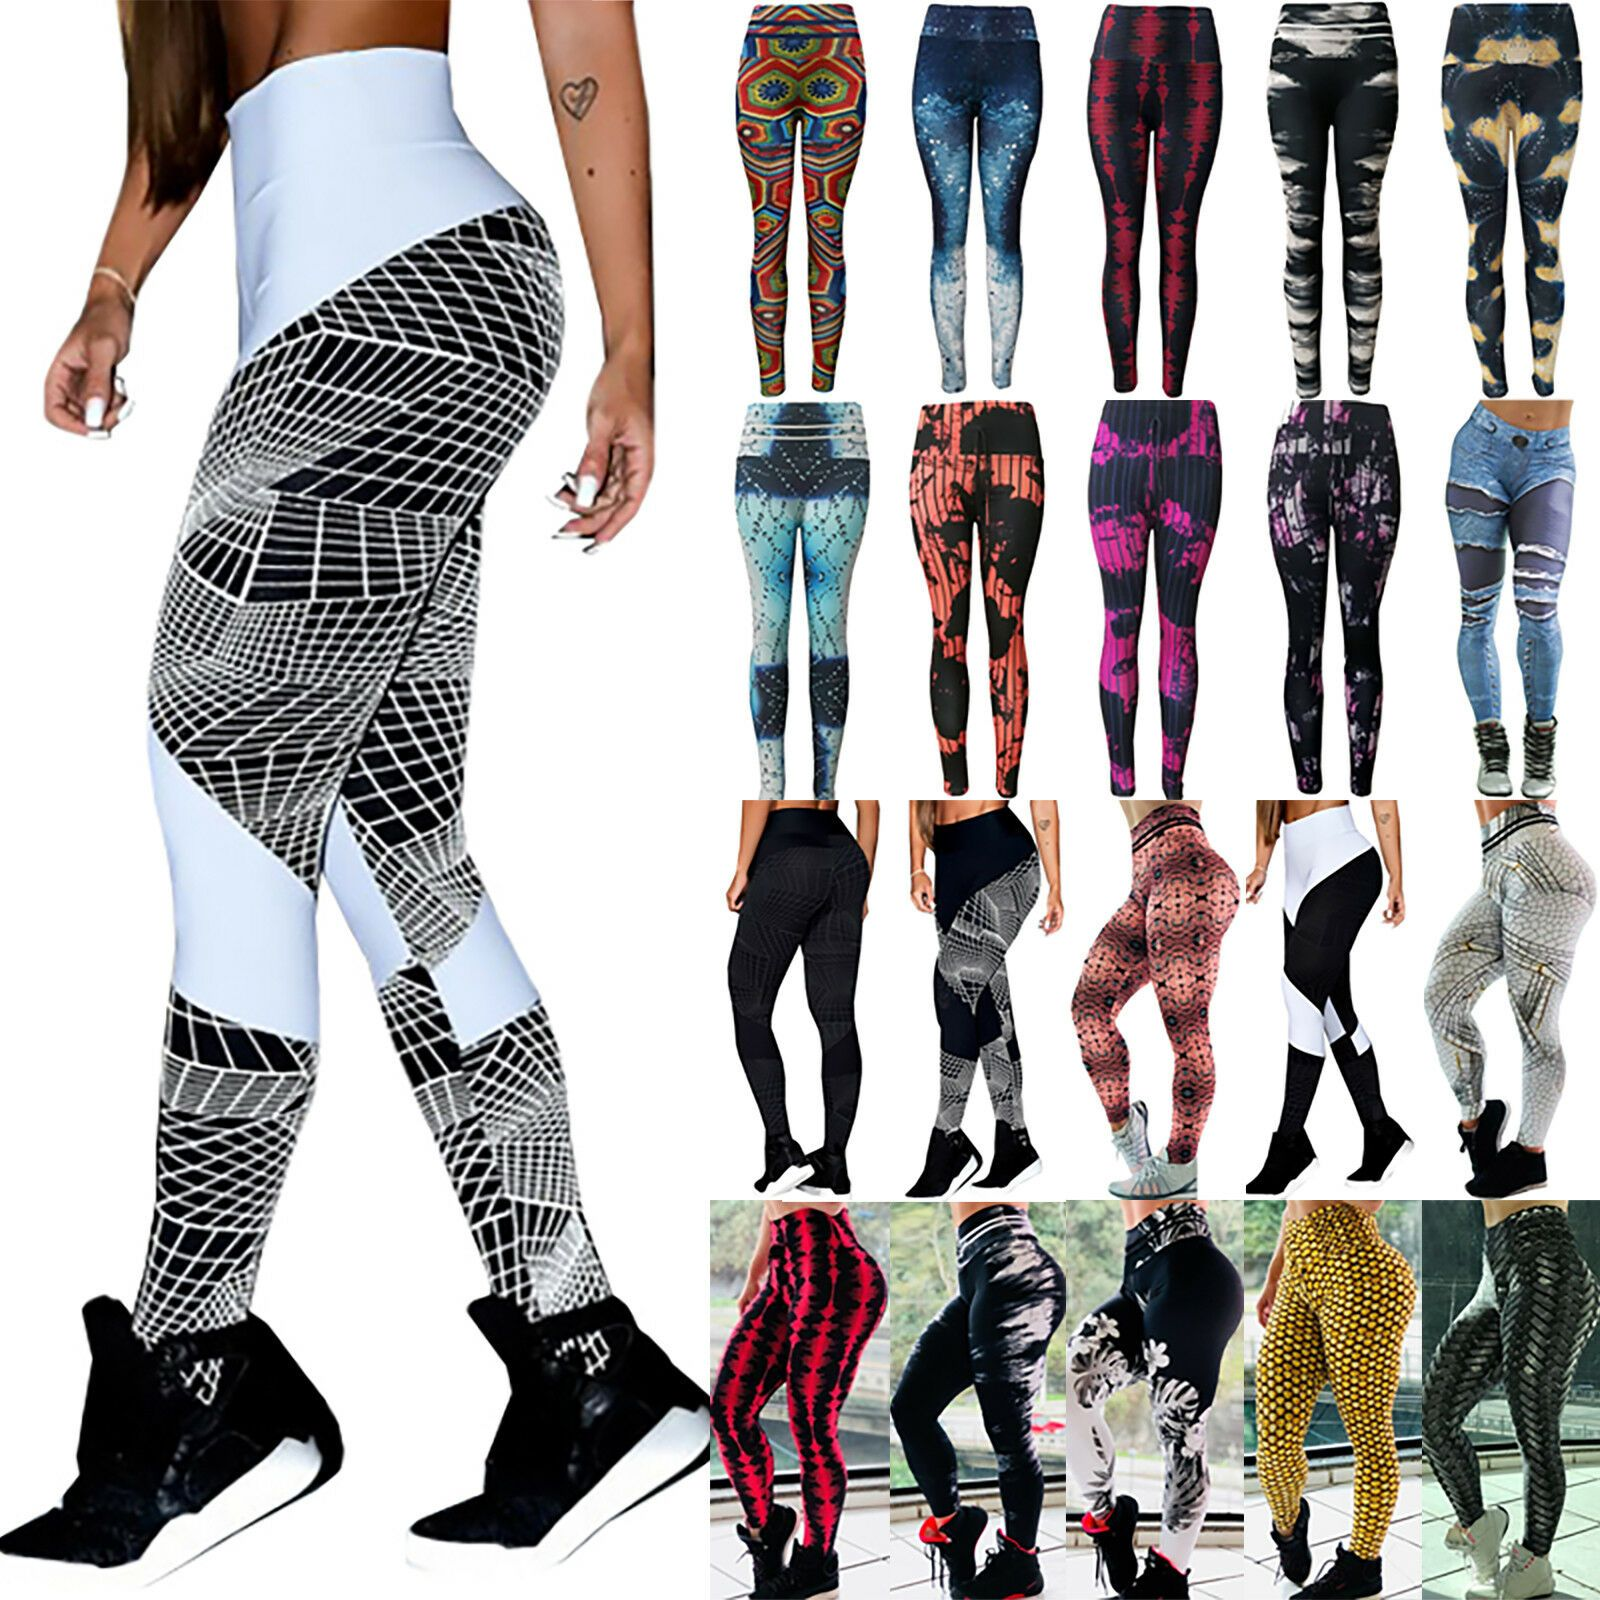 e6de08ff6 Women Printed Yoga Pants Fitness Leggings Jogging Gym Exercise Sports  Trousers